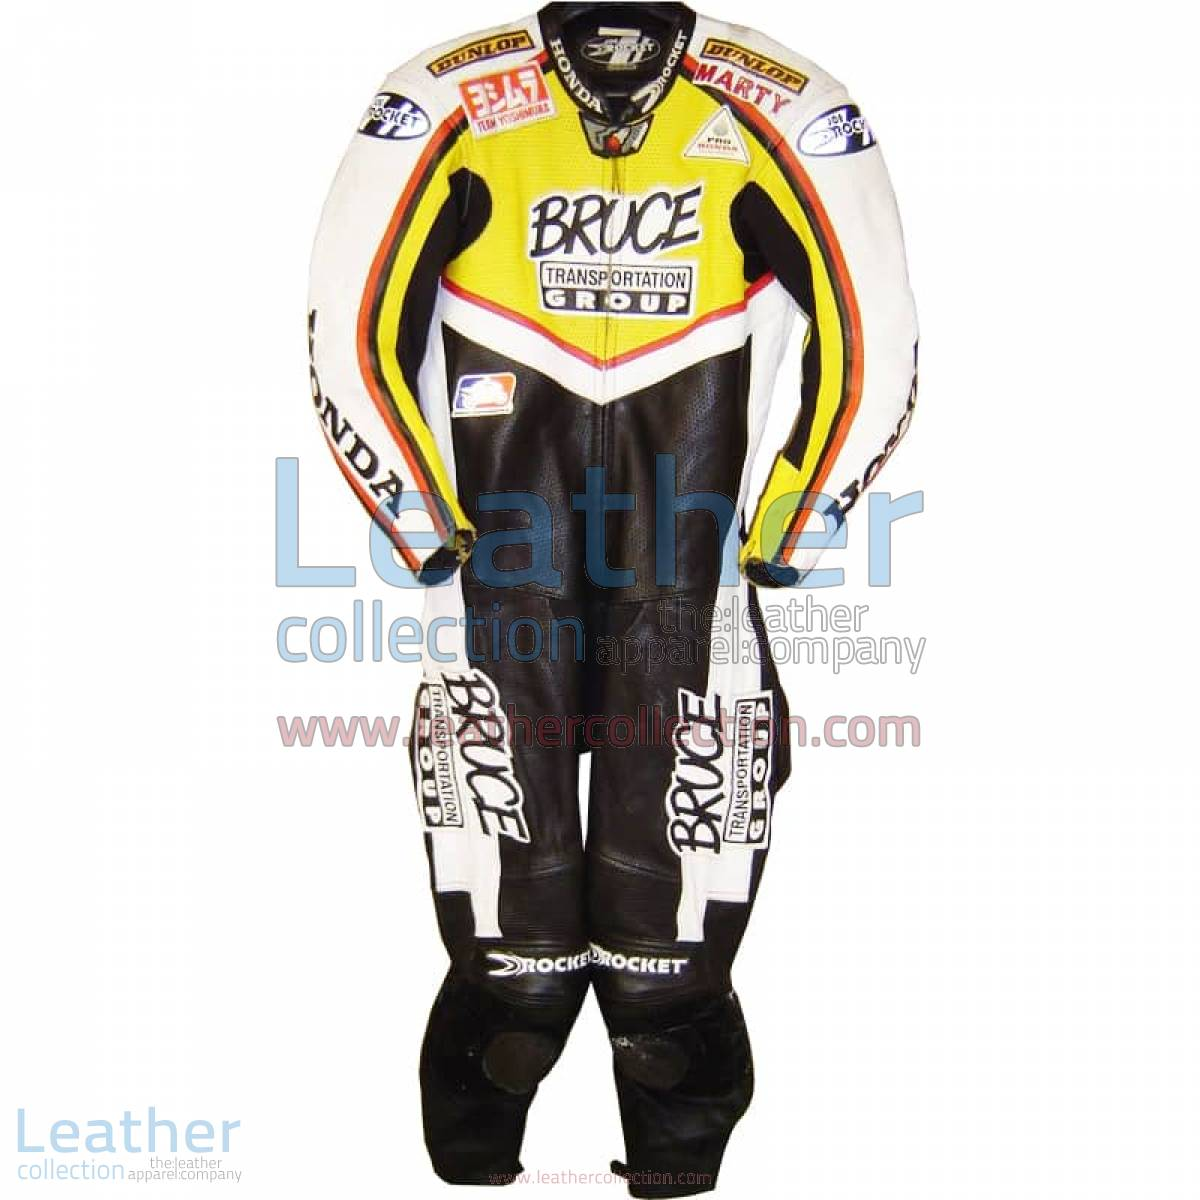 Marty Craggill Honda AMA 2003 Race Suit | honda race suit